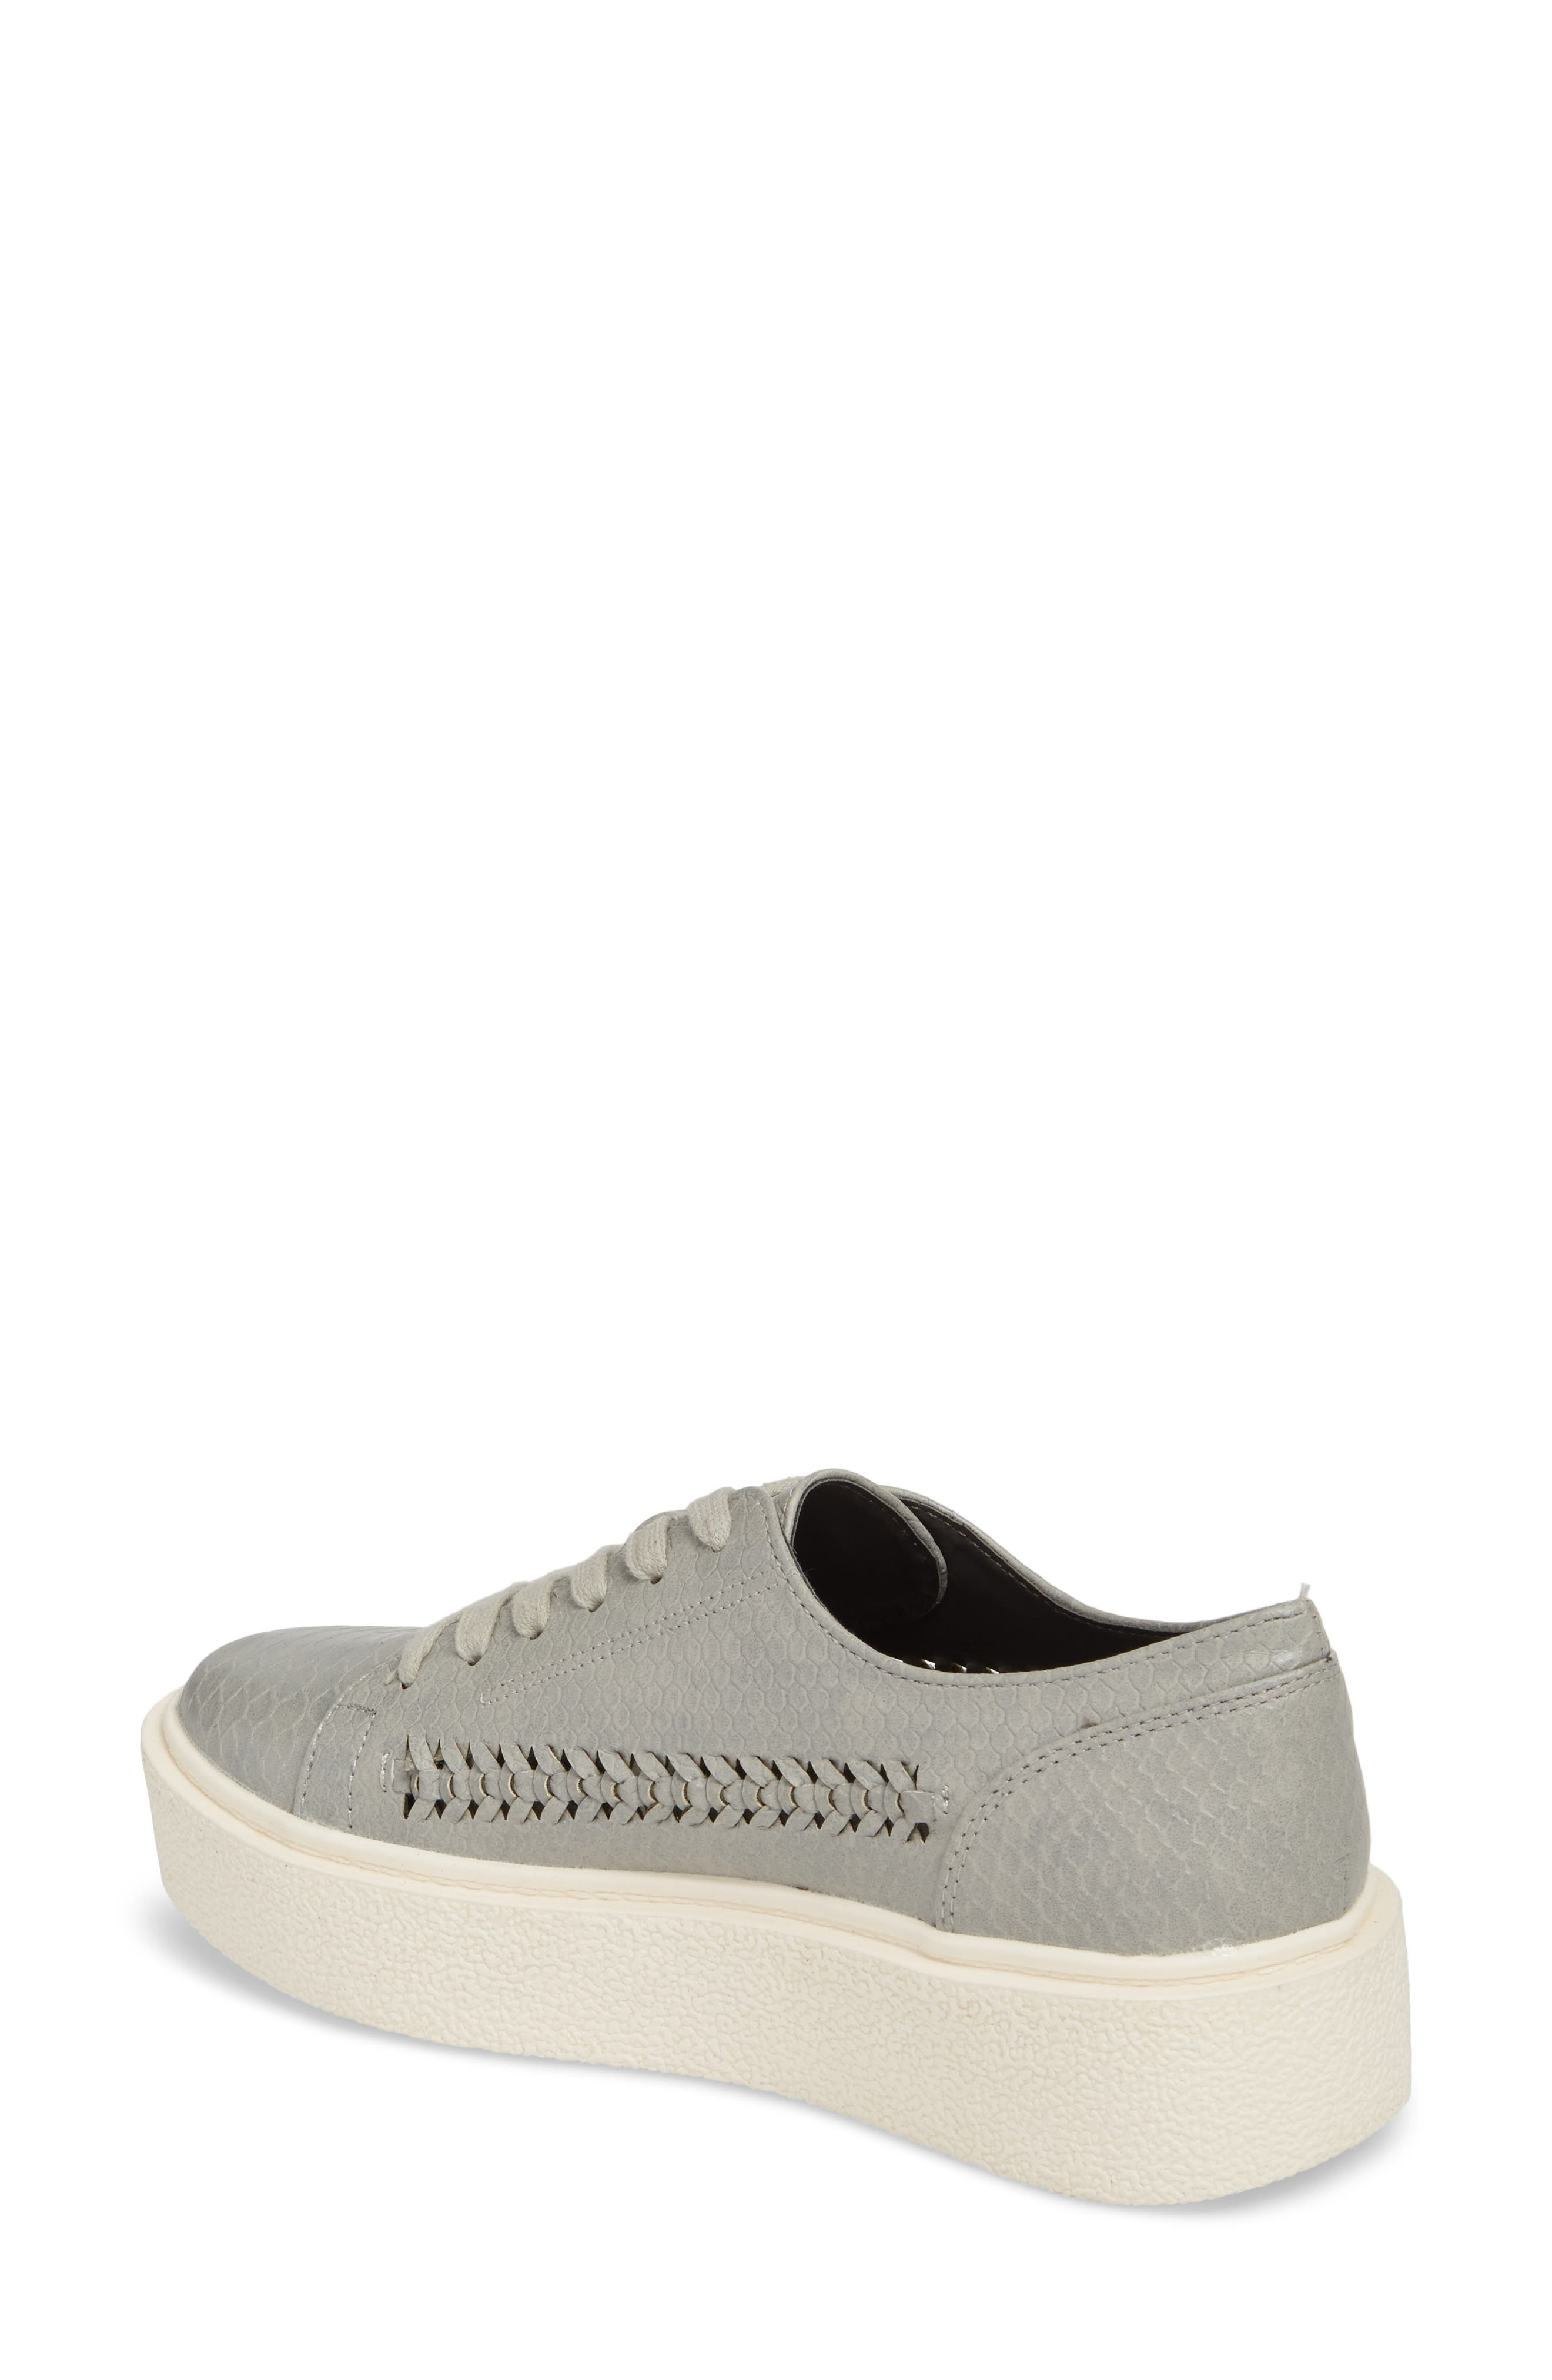 White Out Platform Sneaker,                             Alternate thumbnail 2, color,                             Grey Fabric